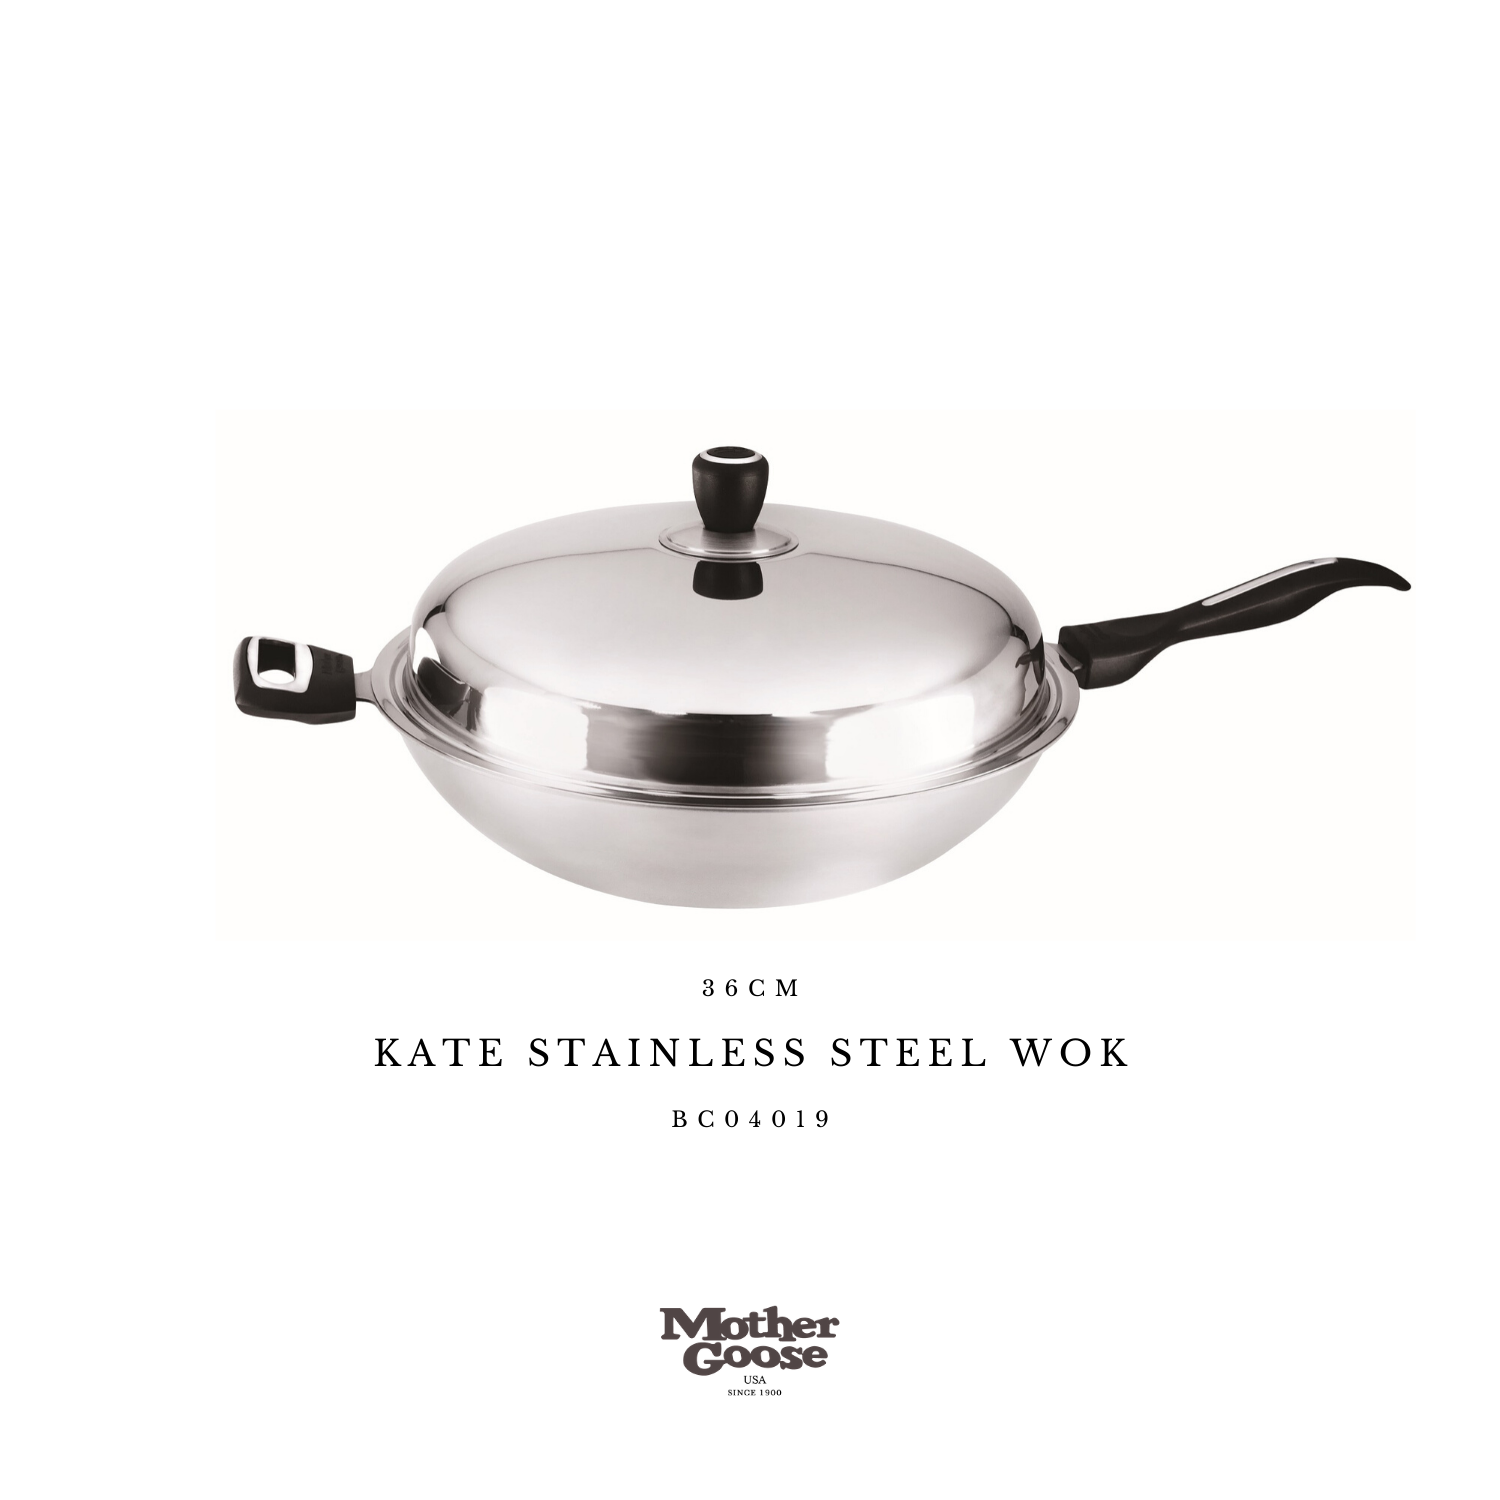 KATE STAINLESS STEEL WOK 36CM